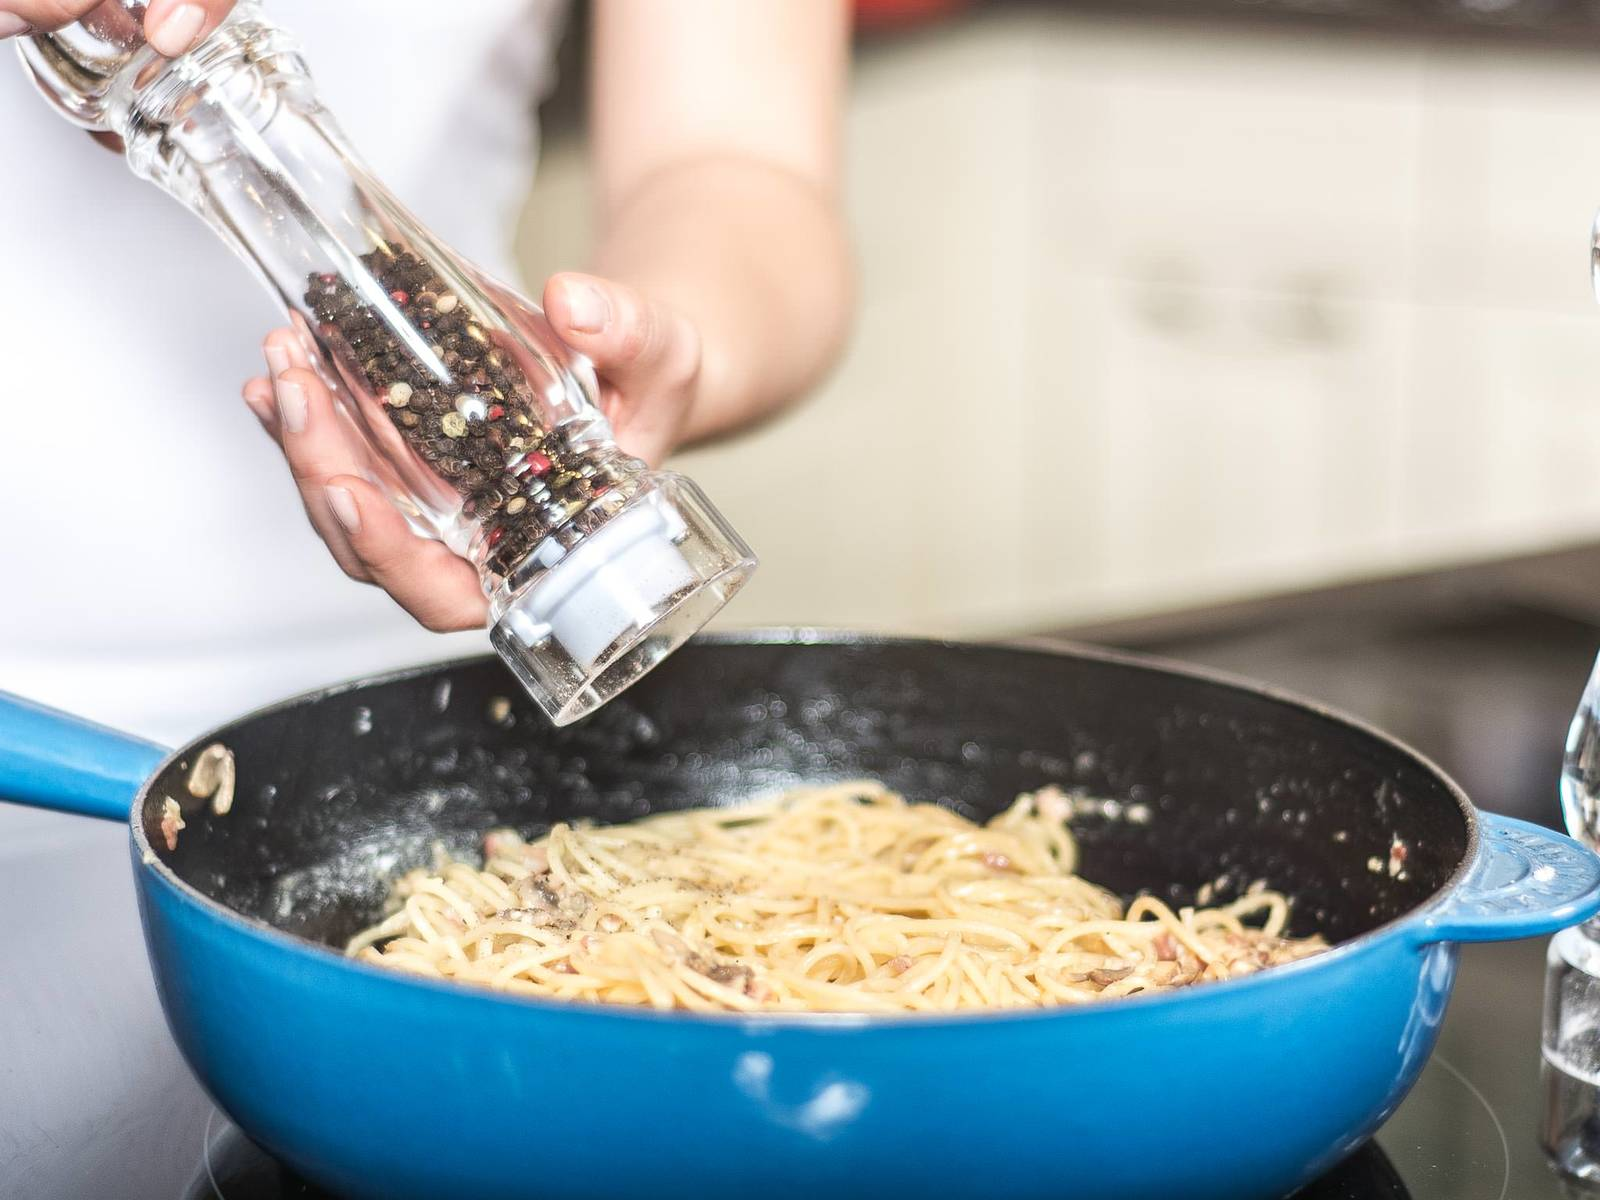 Toss spaghetti in the sauce. Add Parmesan, toss again, and season with salt and pepper to taste before serving.